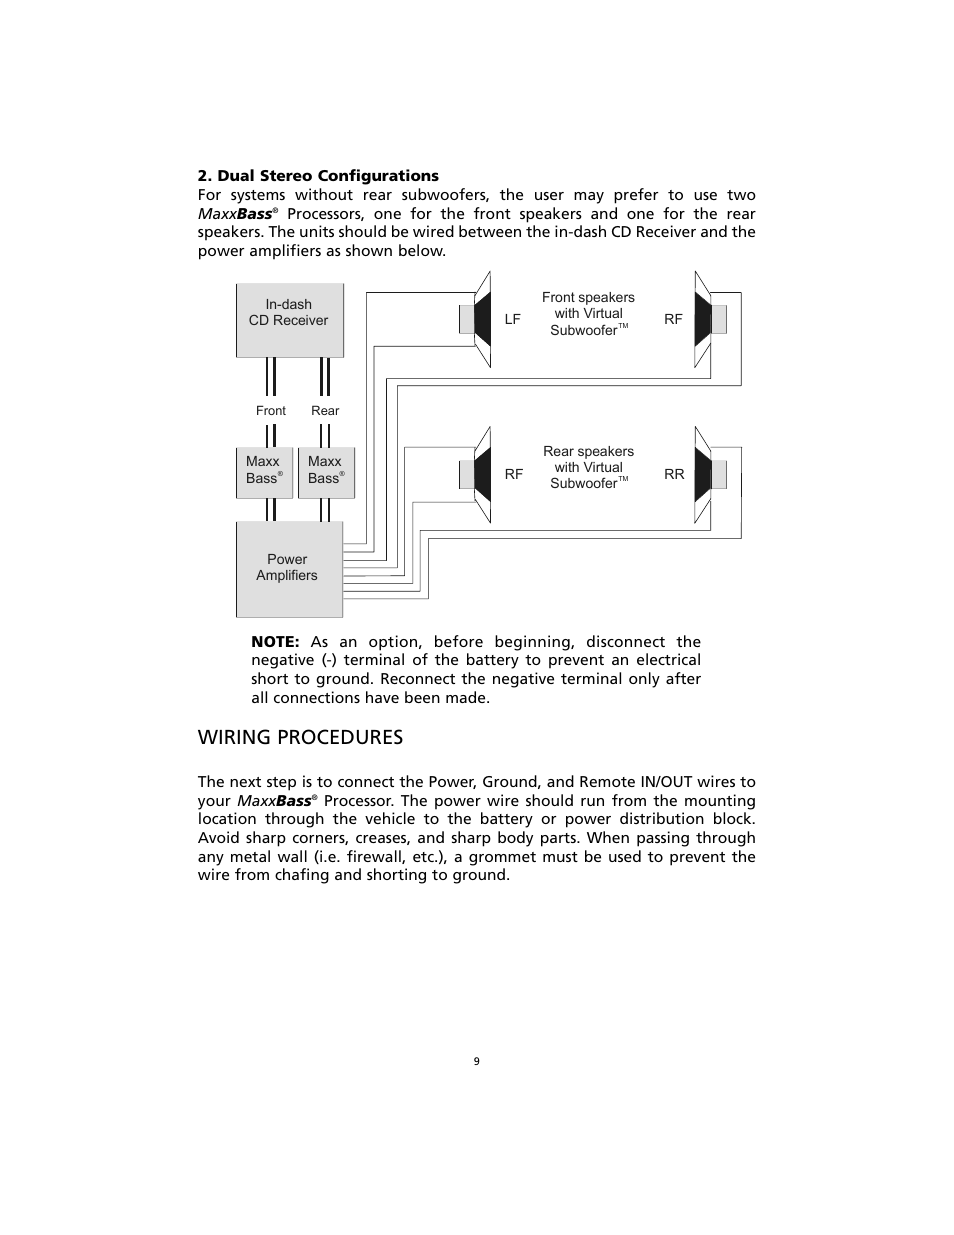 hight resolution of wiring procedures orion car audio orion maxxbass user manual page 10 17